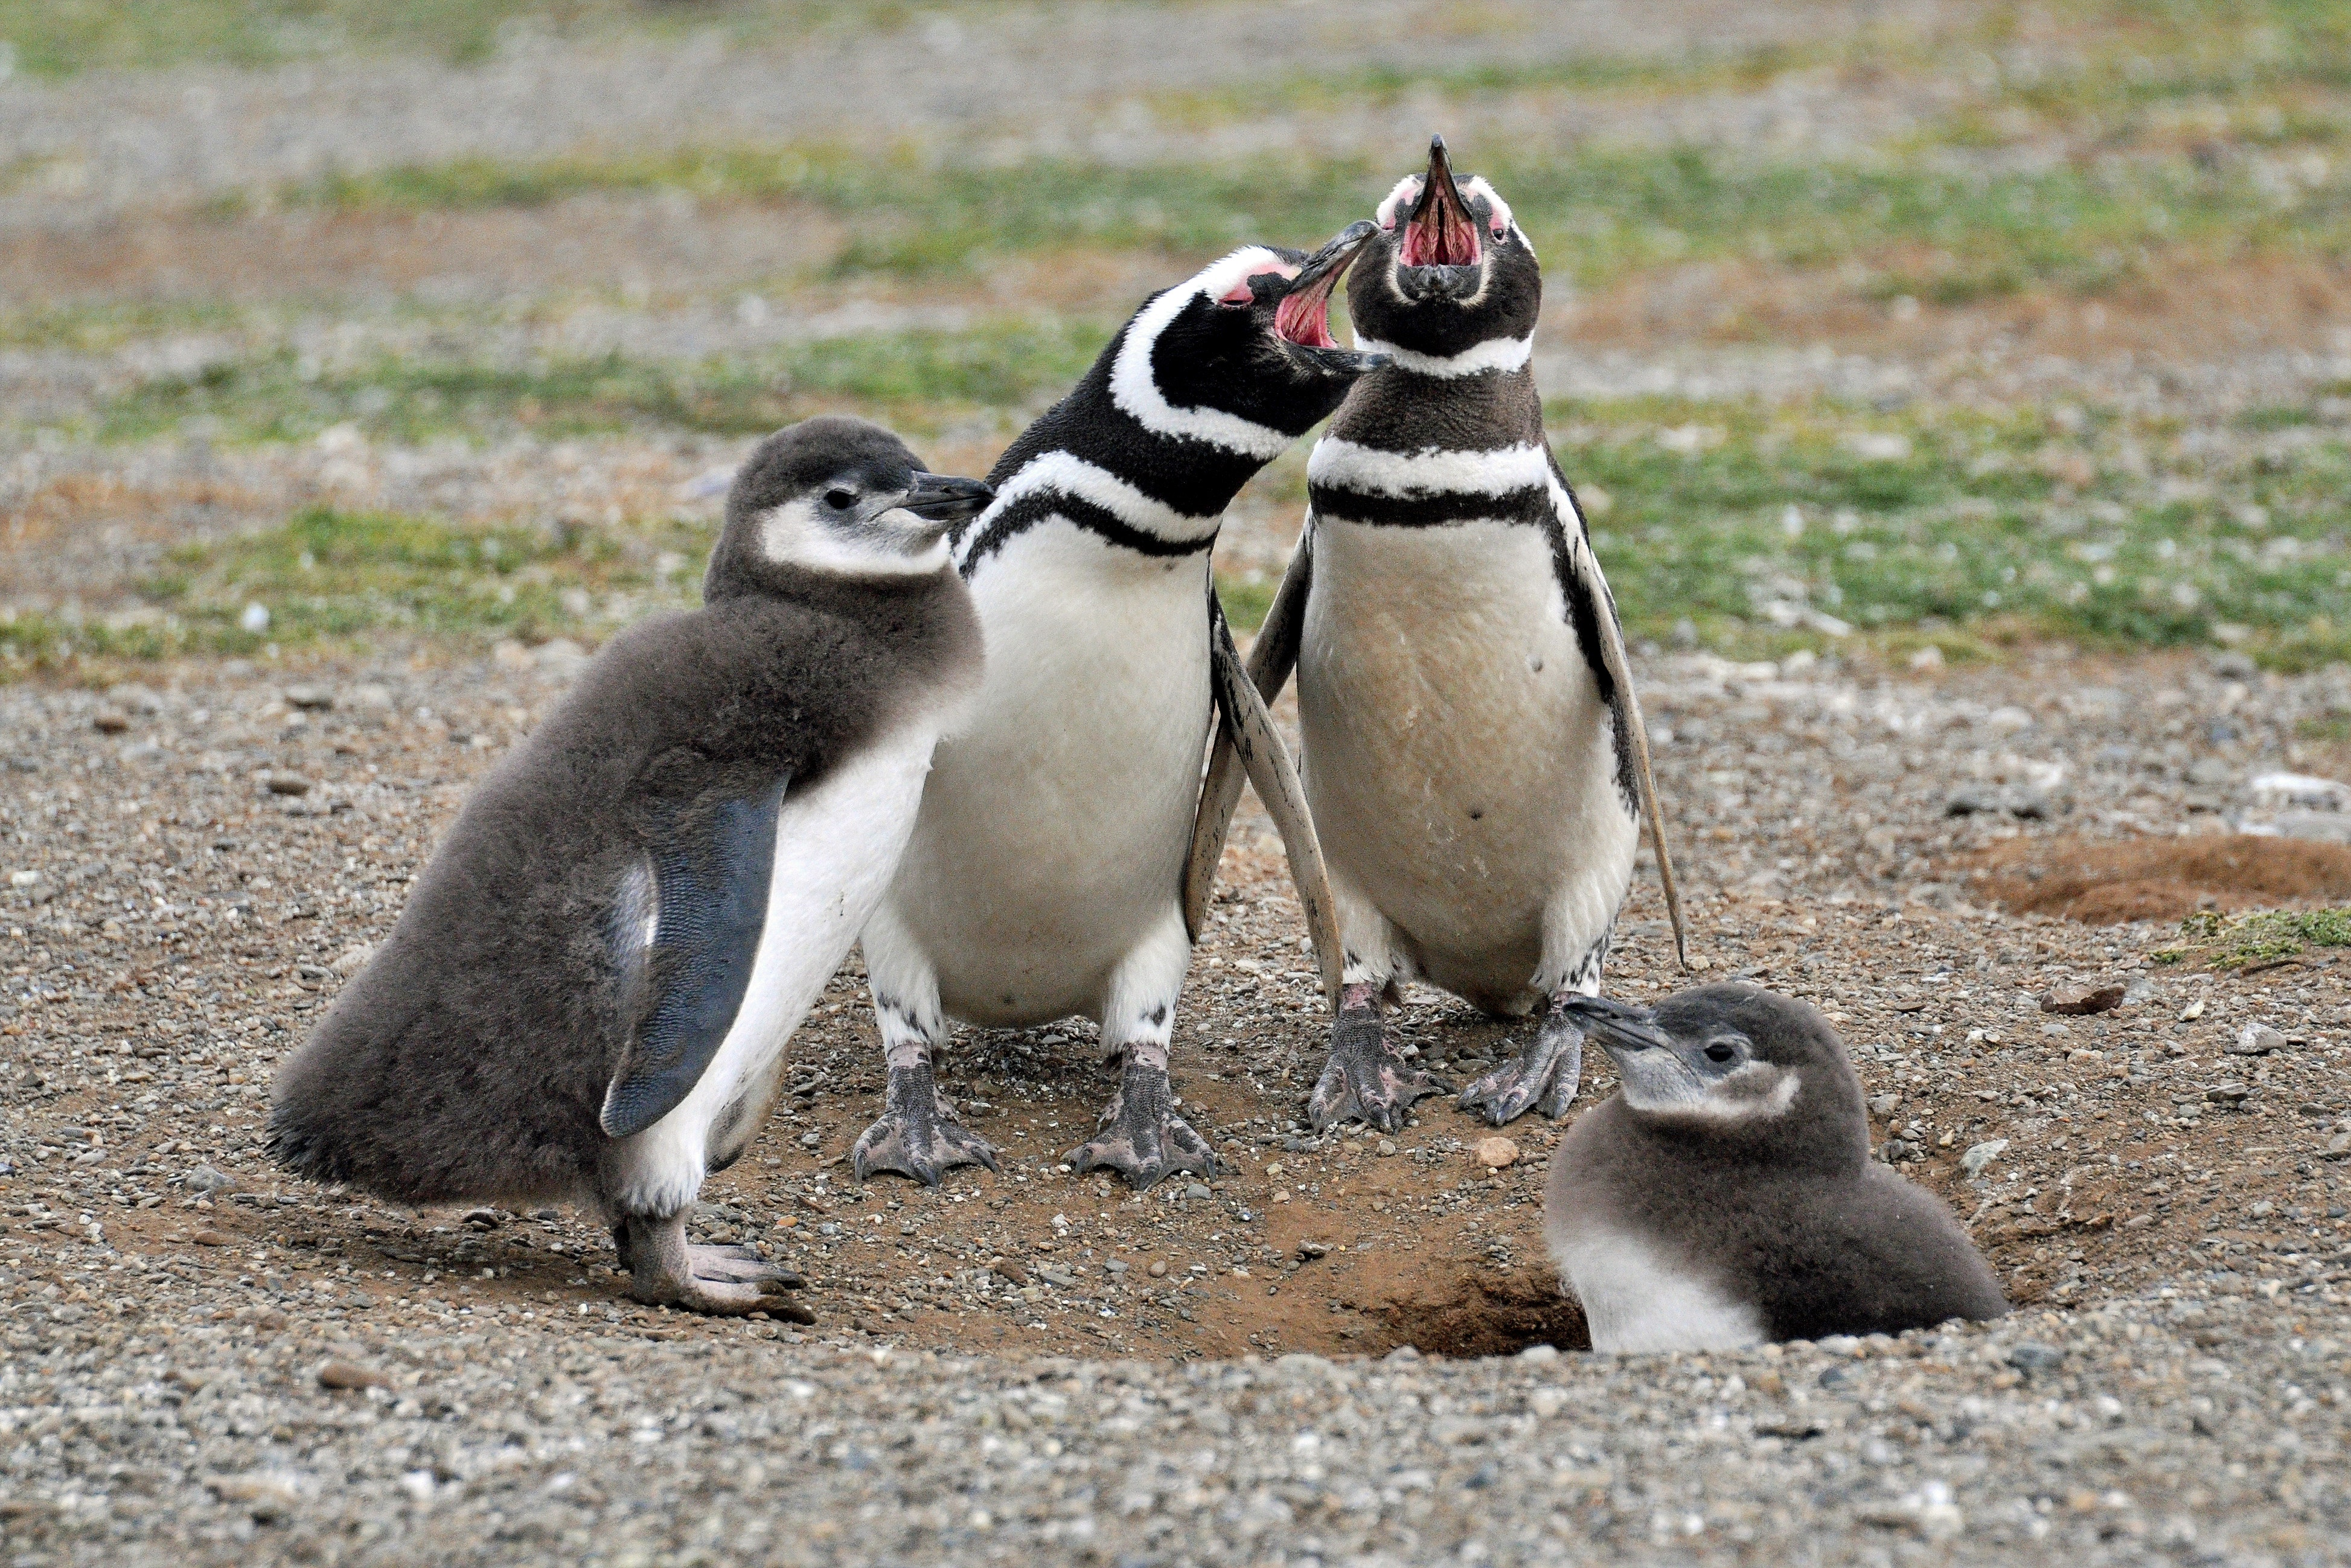 Two white-and-black adult penguins near two penguin chicks photo